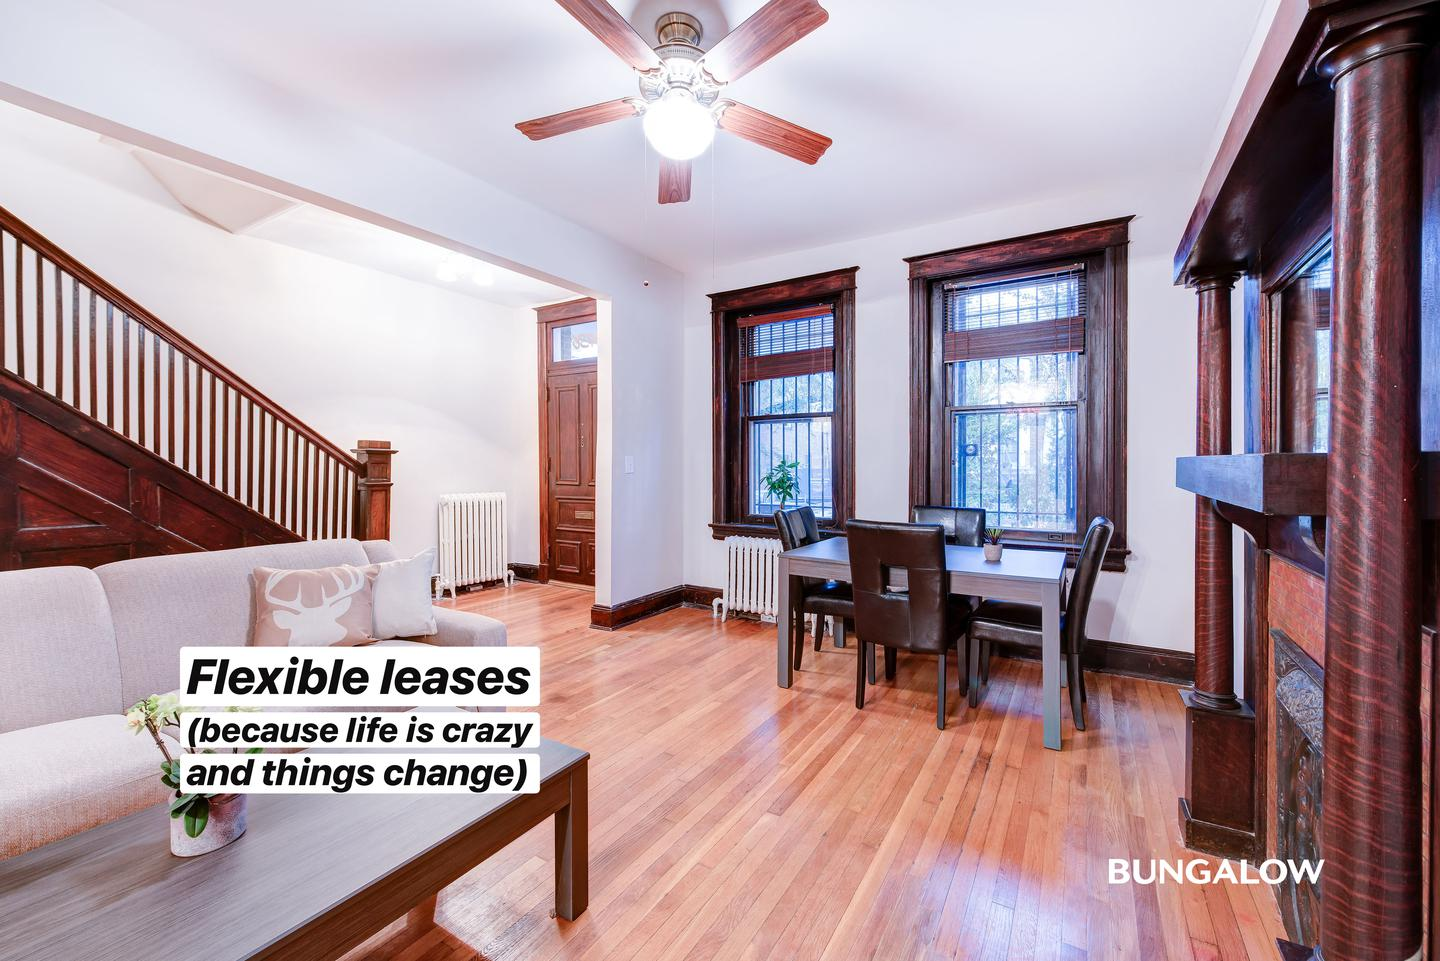 Private Bedroom in Stylish Columbia Heights Townhome With Brick Patio for rent